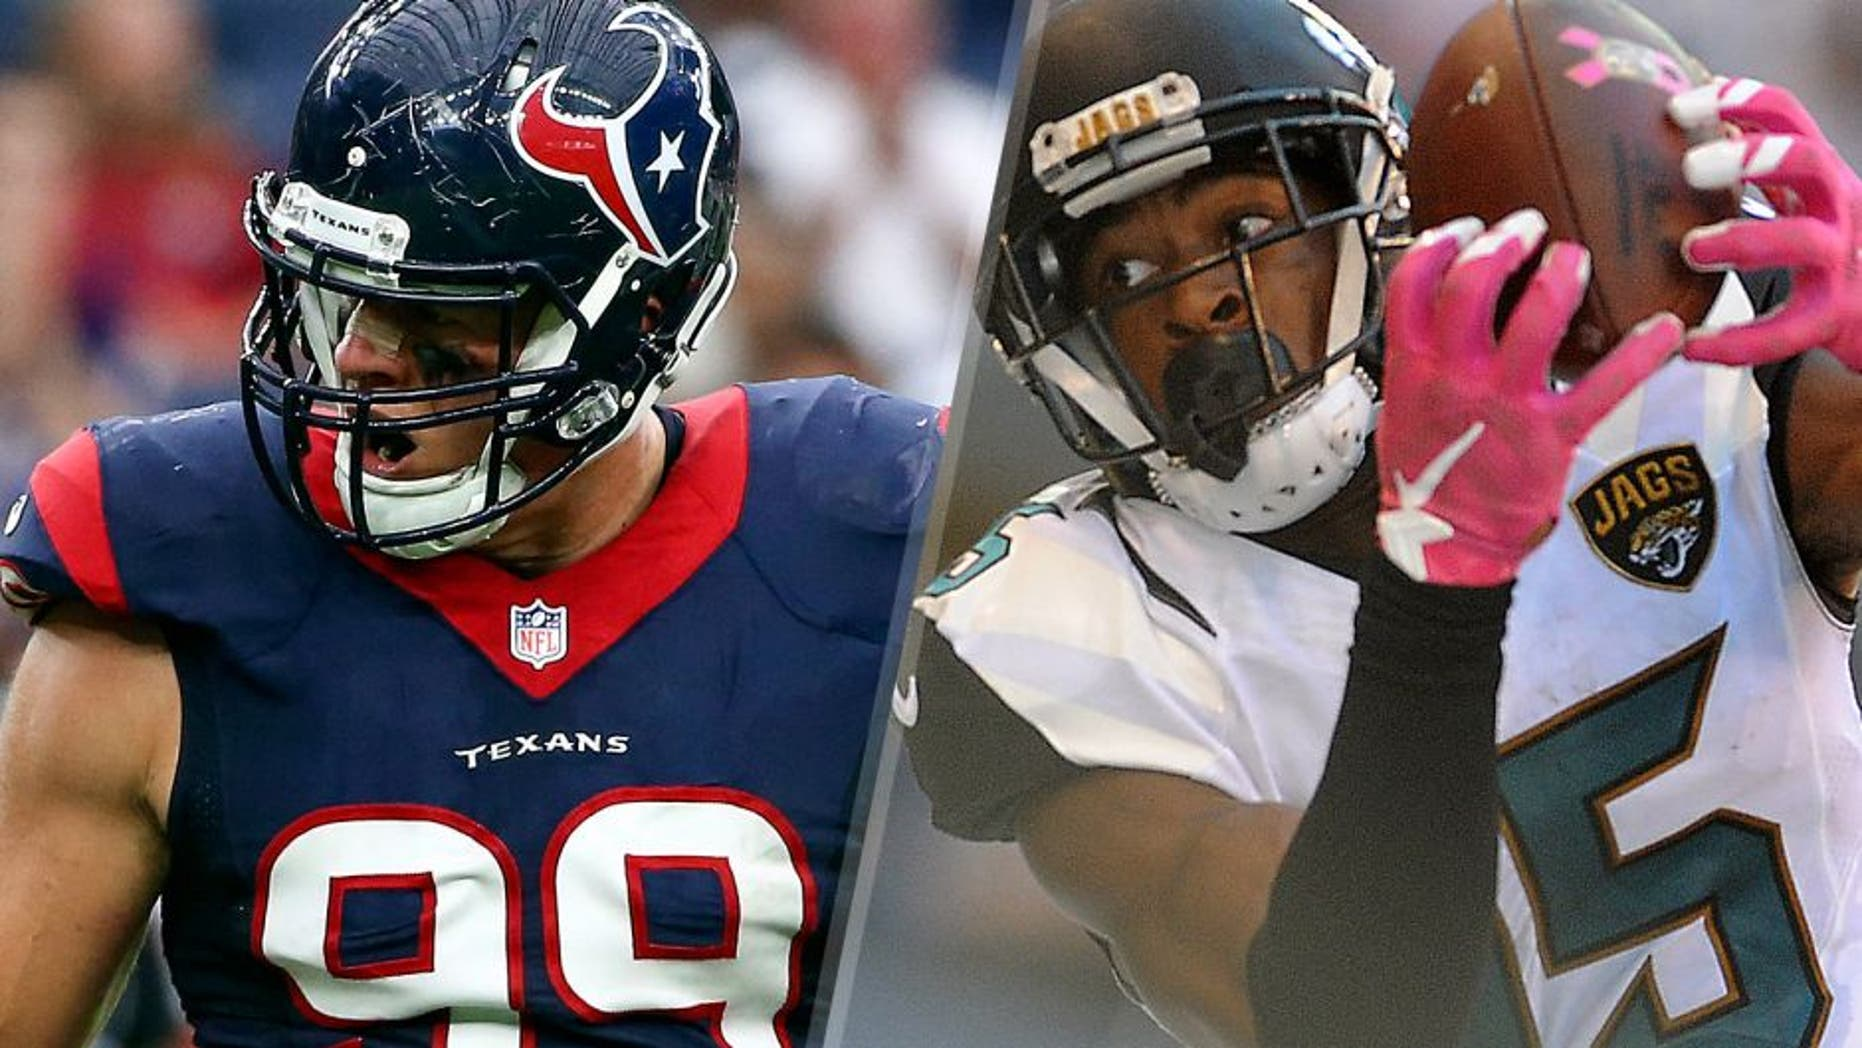 Houston Texans defensive end J.J. Watt (99) reacts during the game against the Tampa Bay Buccaneers at NRG Stadium. Mandatory Credit: Kevin Jairaj-USA TODAY Sports Jacksonville Jaguars receiver Allen Robinson (15) makes a catch in the second half against the Indianapolis Colts at Lucas Oil Stadium. Mandatory Credit: Thomas J. Russo-USA TODAY Sports